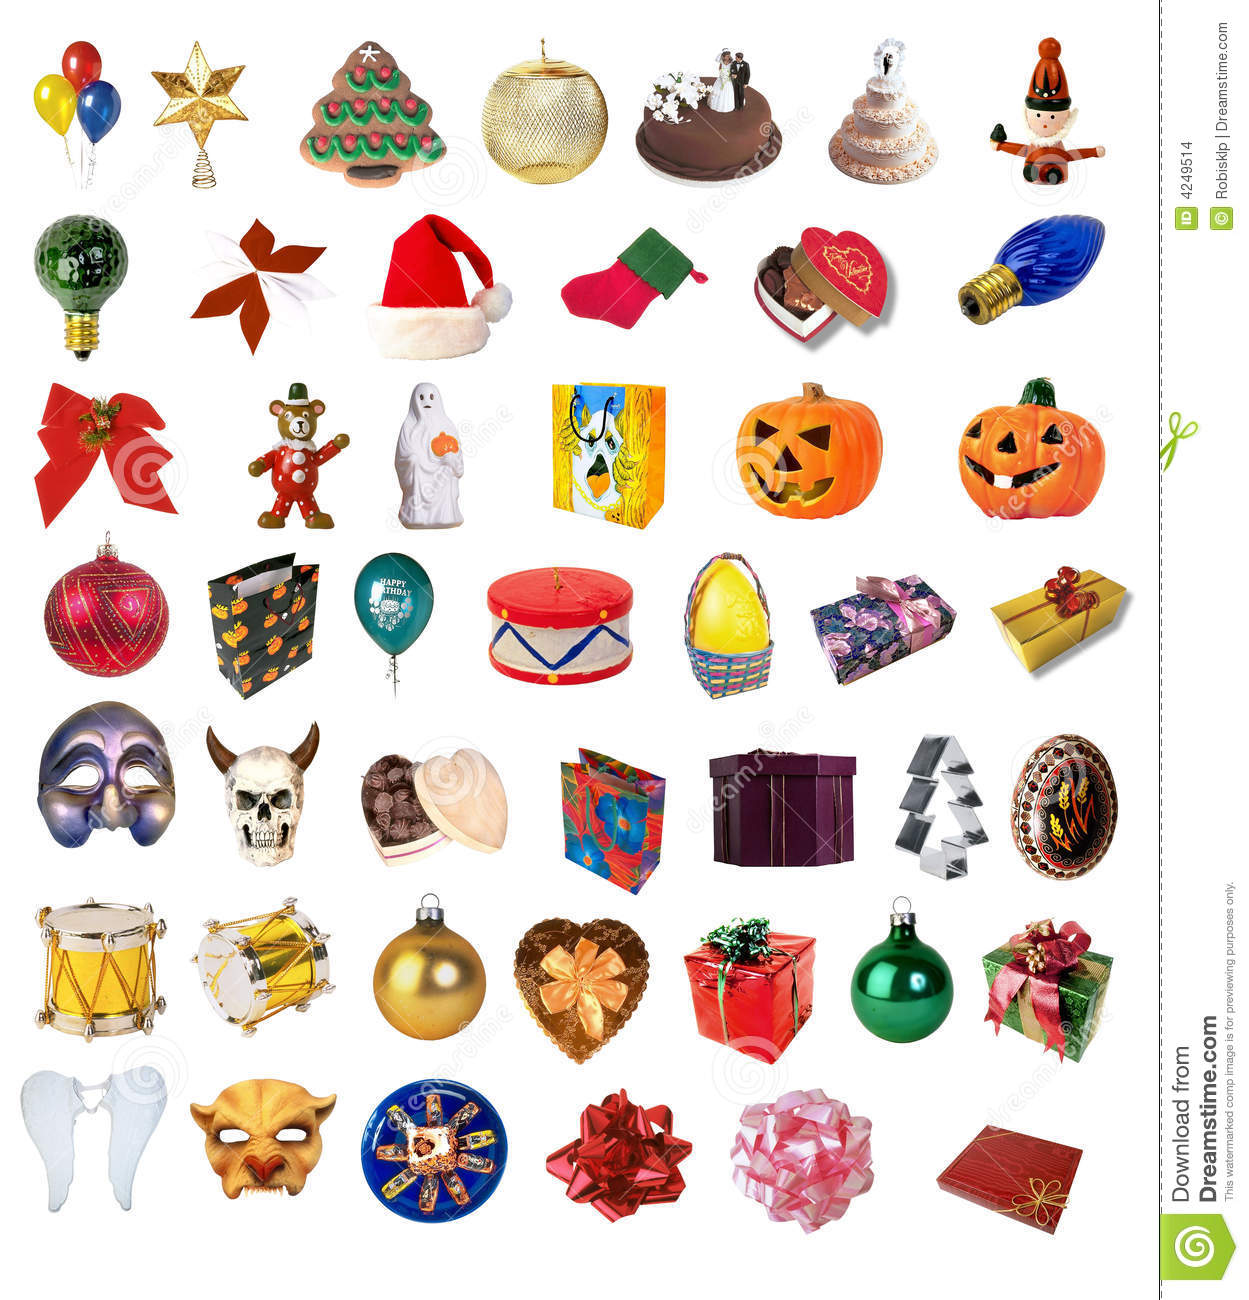 ... Resolution 1249x1300 ... - Clipart Collection